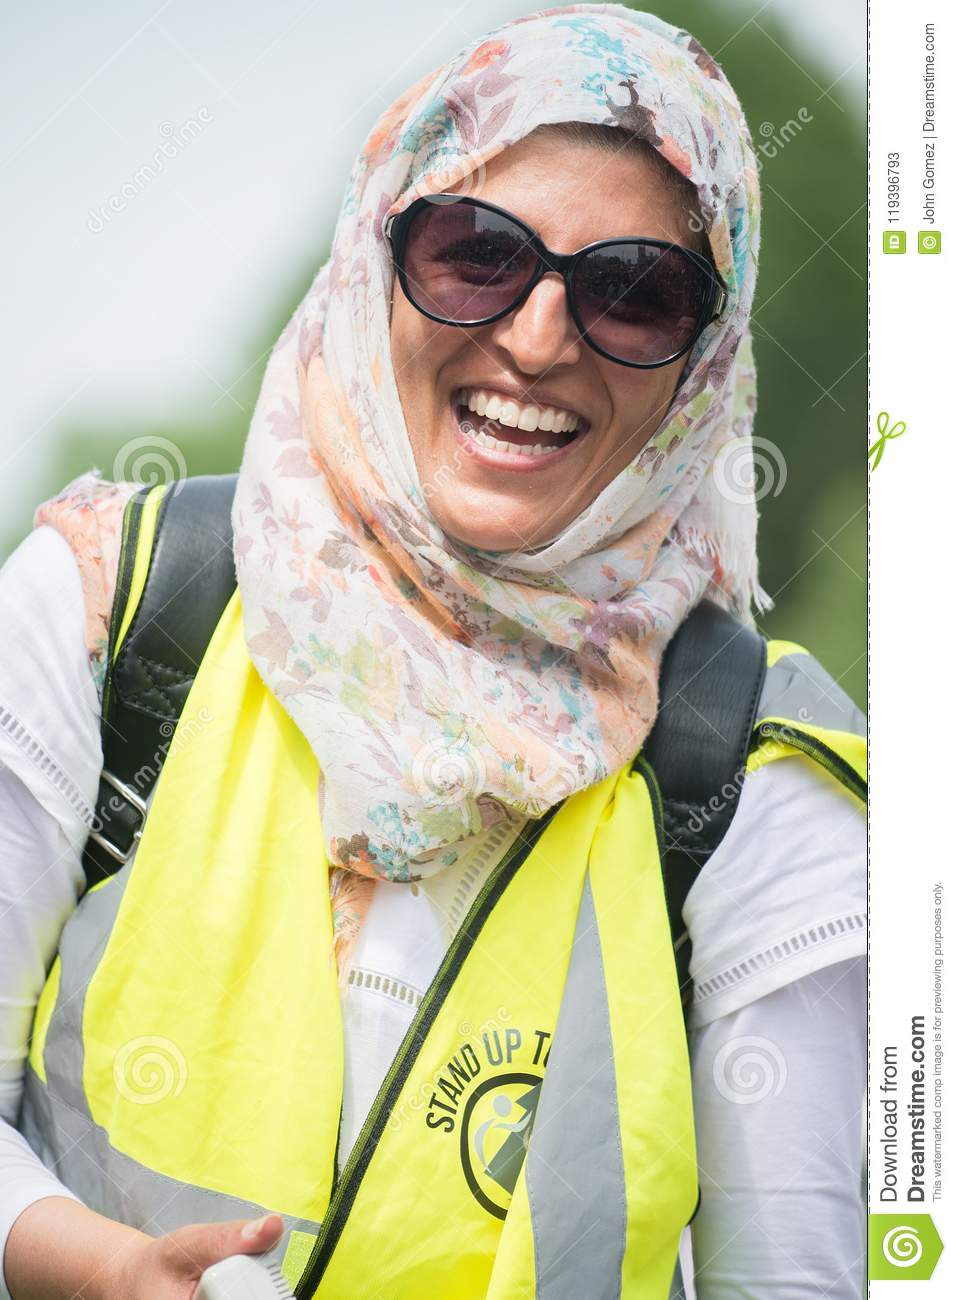 Happy muslim woman at the counter-demo by pressure group Unite Against Fascism in Whitehall, London, UK.